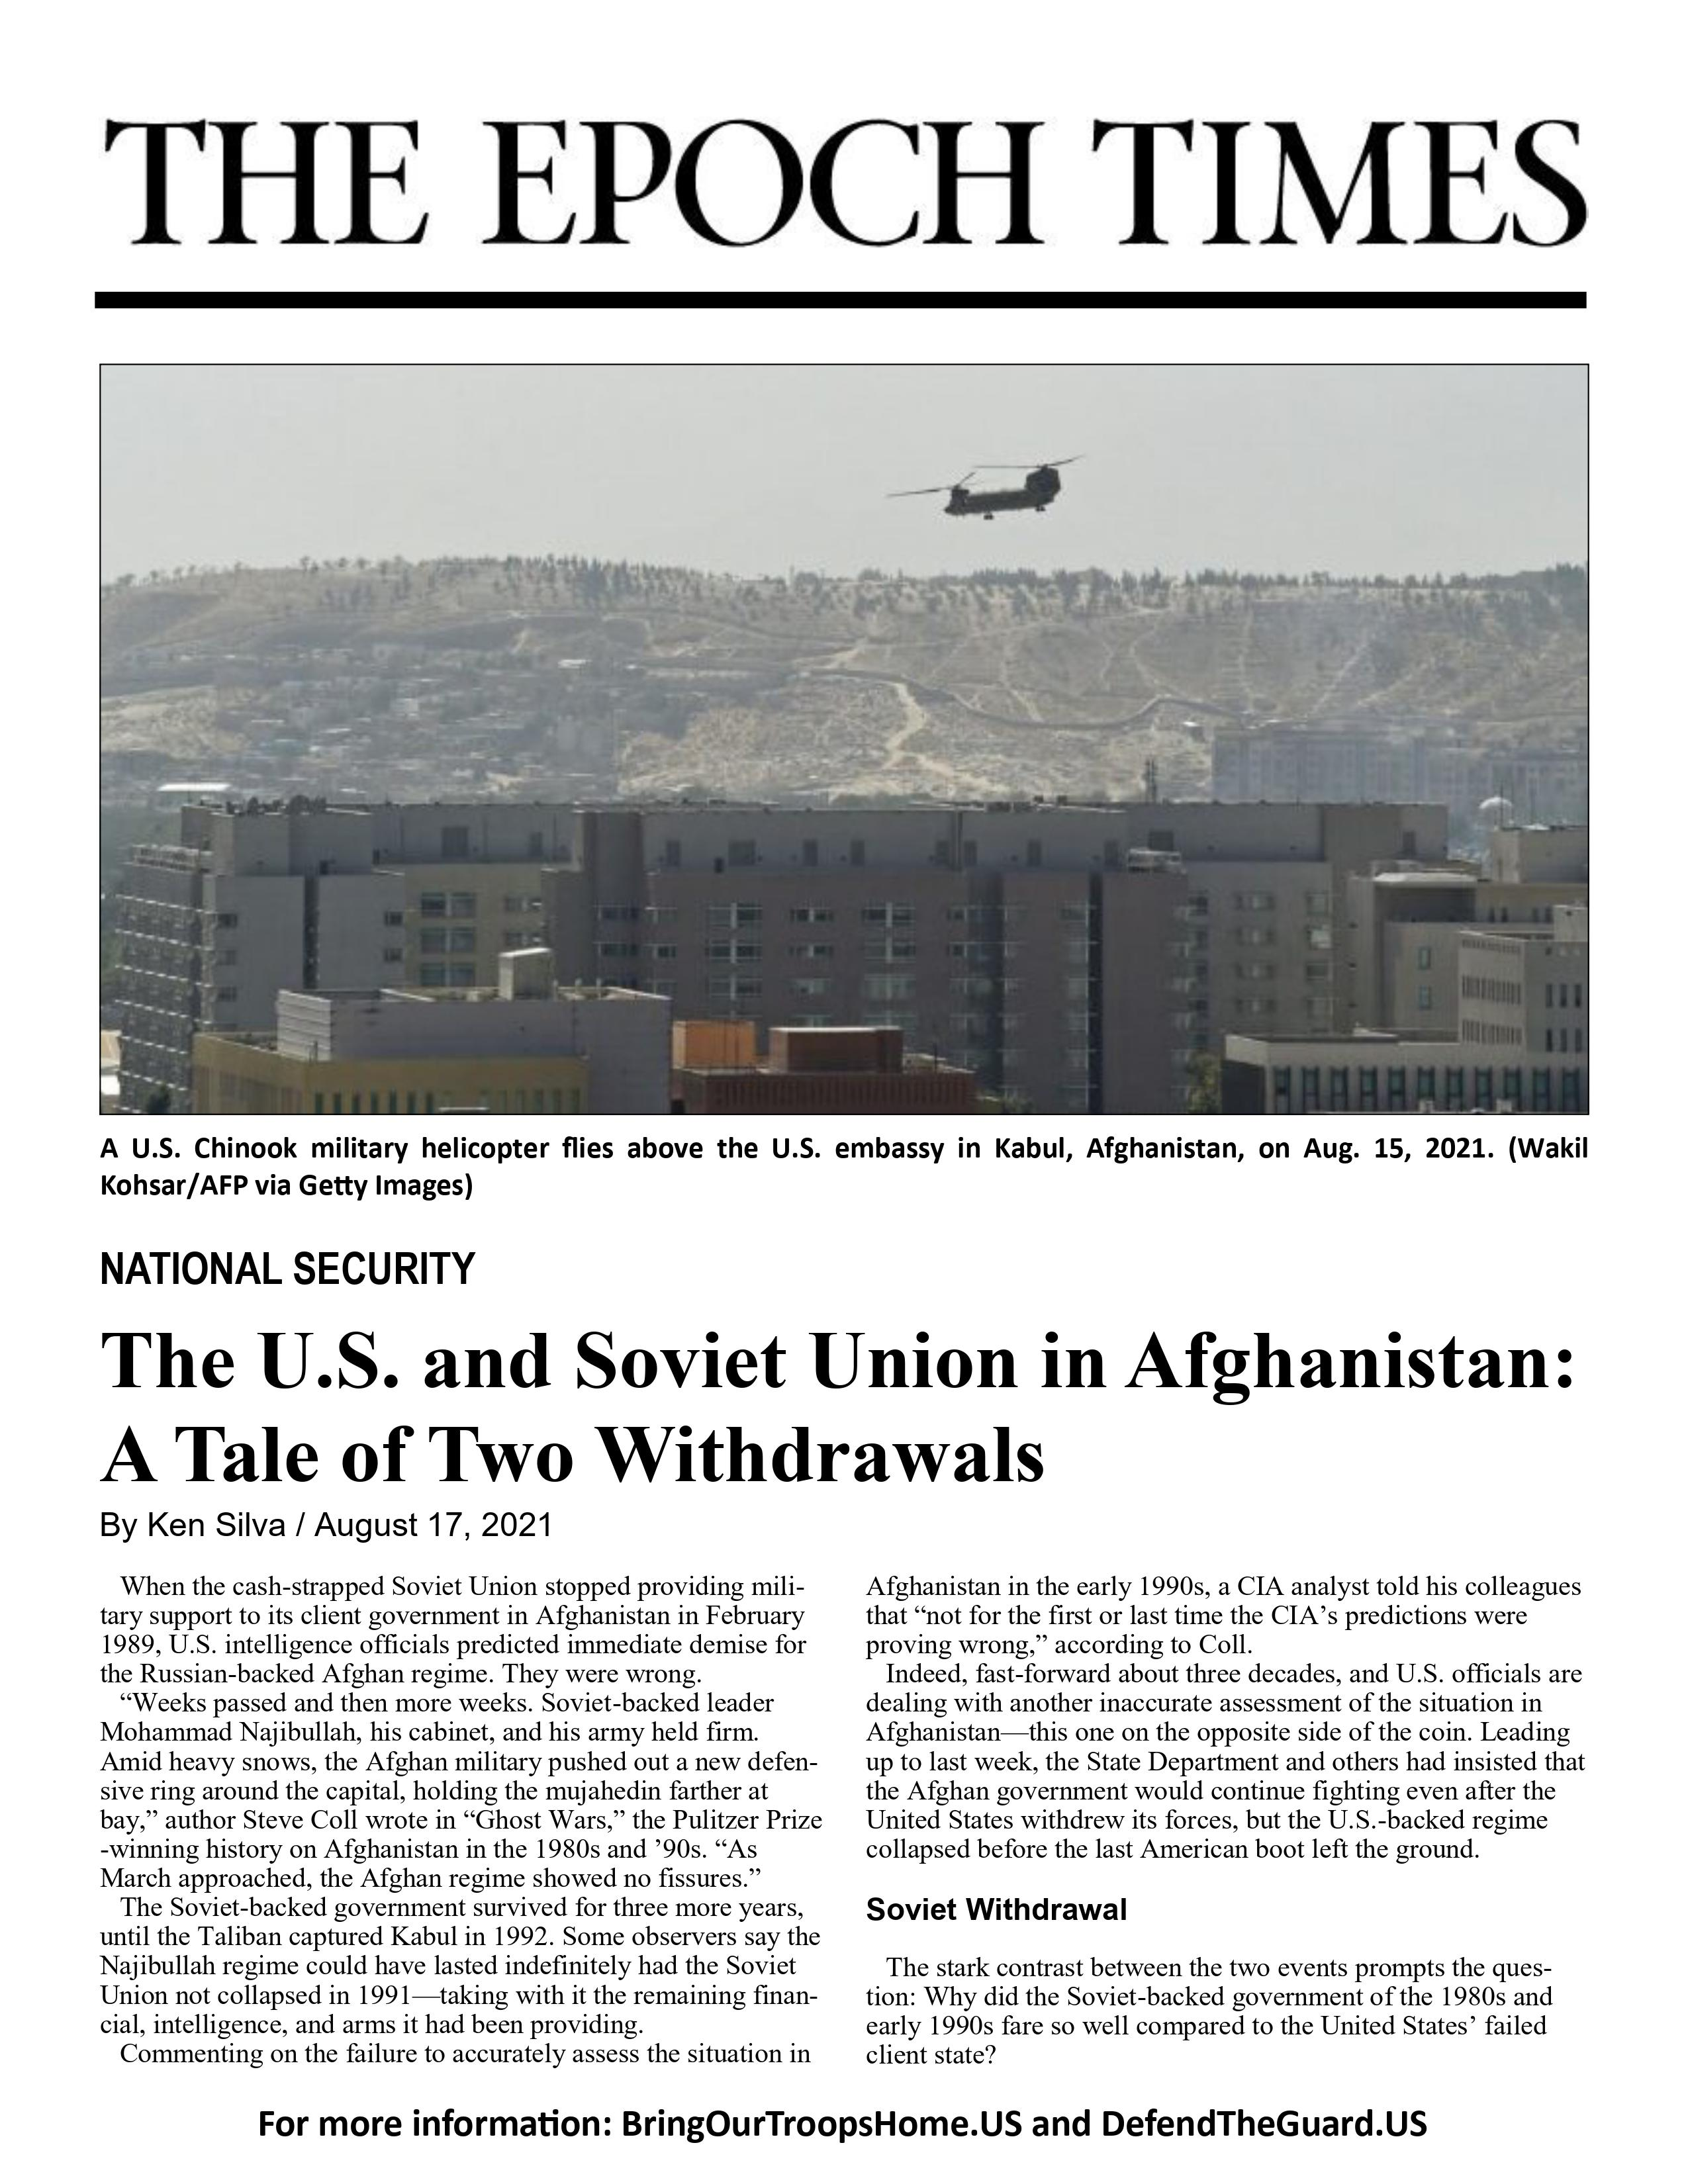 The U.S. and Soviet Union in Afghanistan: A Tale of Two Withdrawals